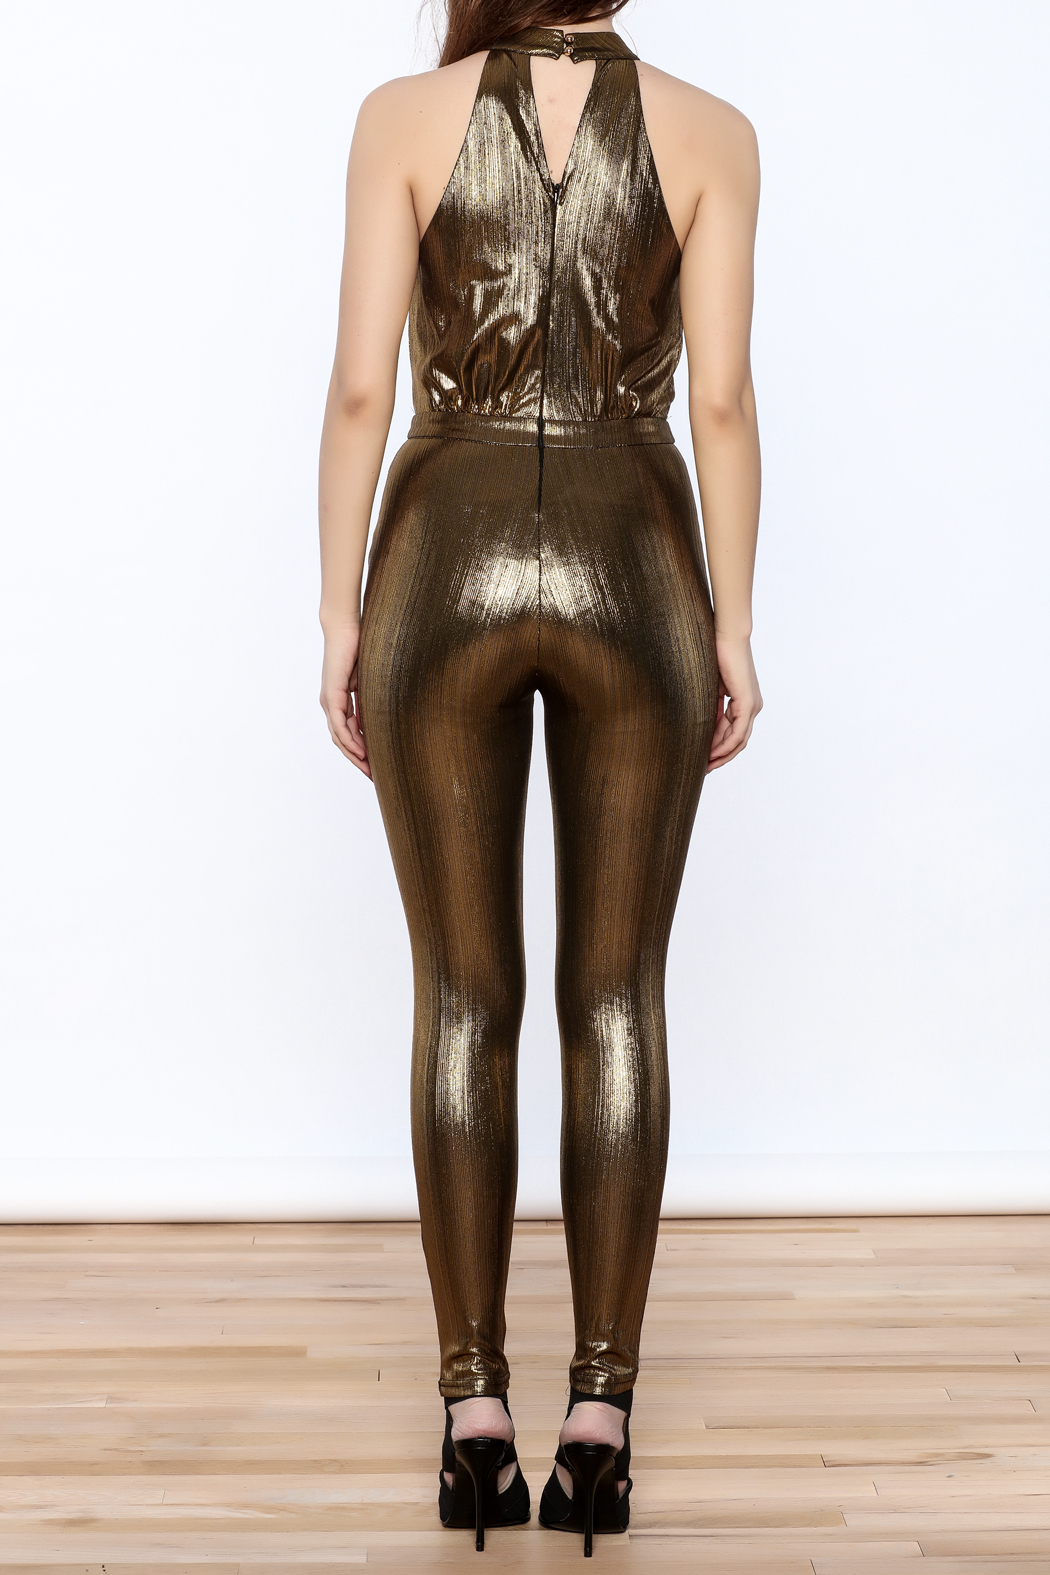 6468a2326a7 Xtaren Gold Jumpsuit from South Carolina by Holictique — Shoptiques